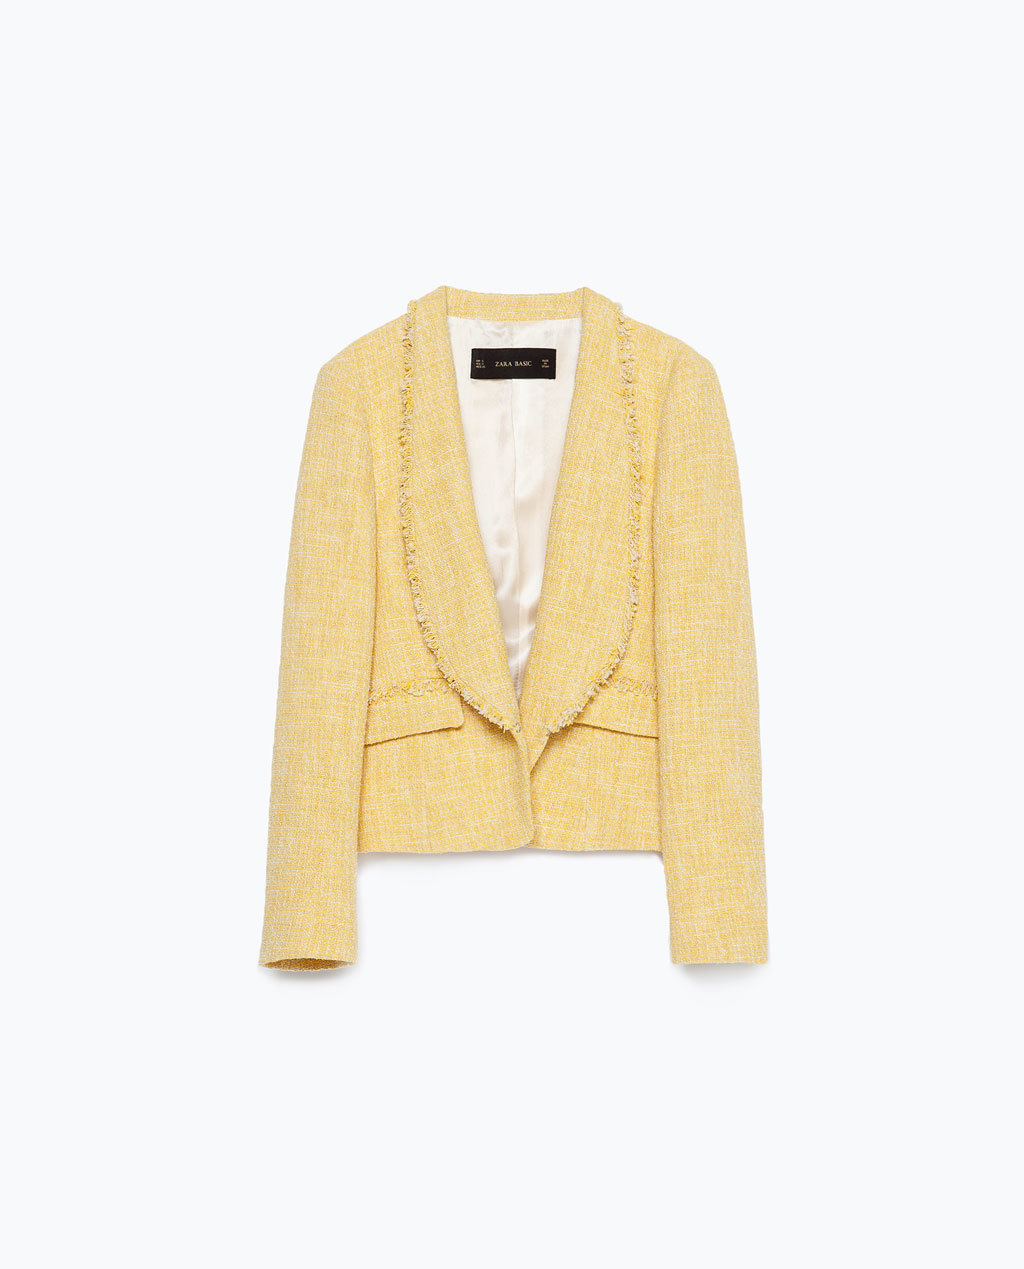 Frayed Short Blazer - pattern: plain; style: single breasted blazer; collar: shawl/waterfall; predominant colour: primrose yellow; occasions: casual, work, creative work; length: standard; fit: straight cut (boxy); fibres: cotton - mix; sleeve length: long sleeve; sleeve style: standard; collar break: low/open; pattern type: fabric; texture group: woven light midweight; season: s/s 2015